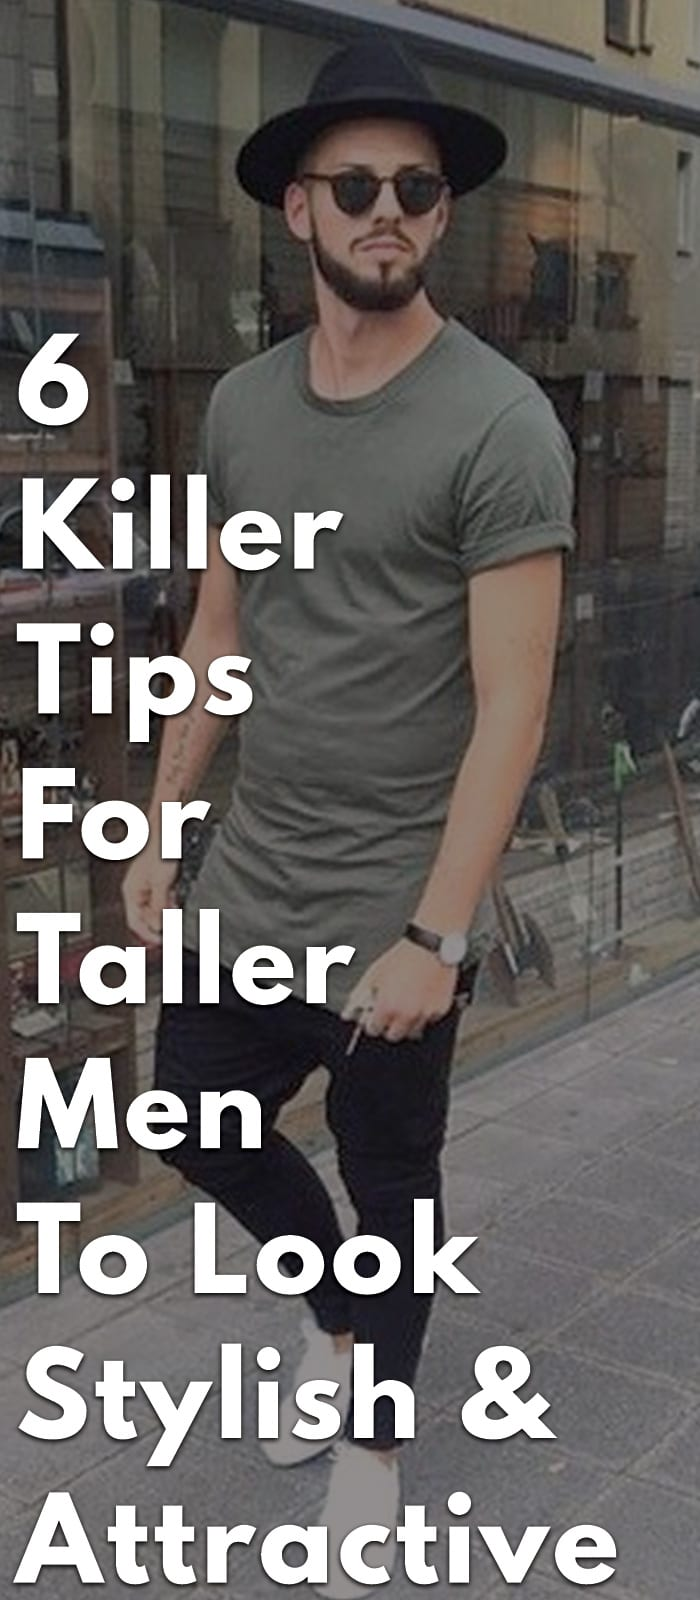 6-Killer-Tips-For-Taller-Men-To-Look-Stylish-&-Attractive